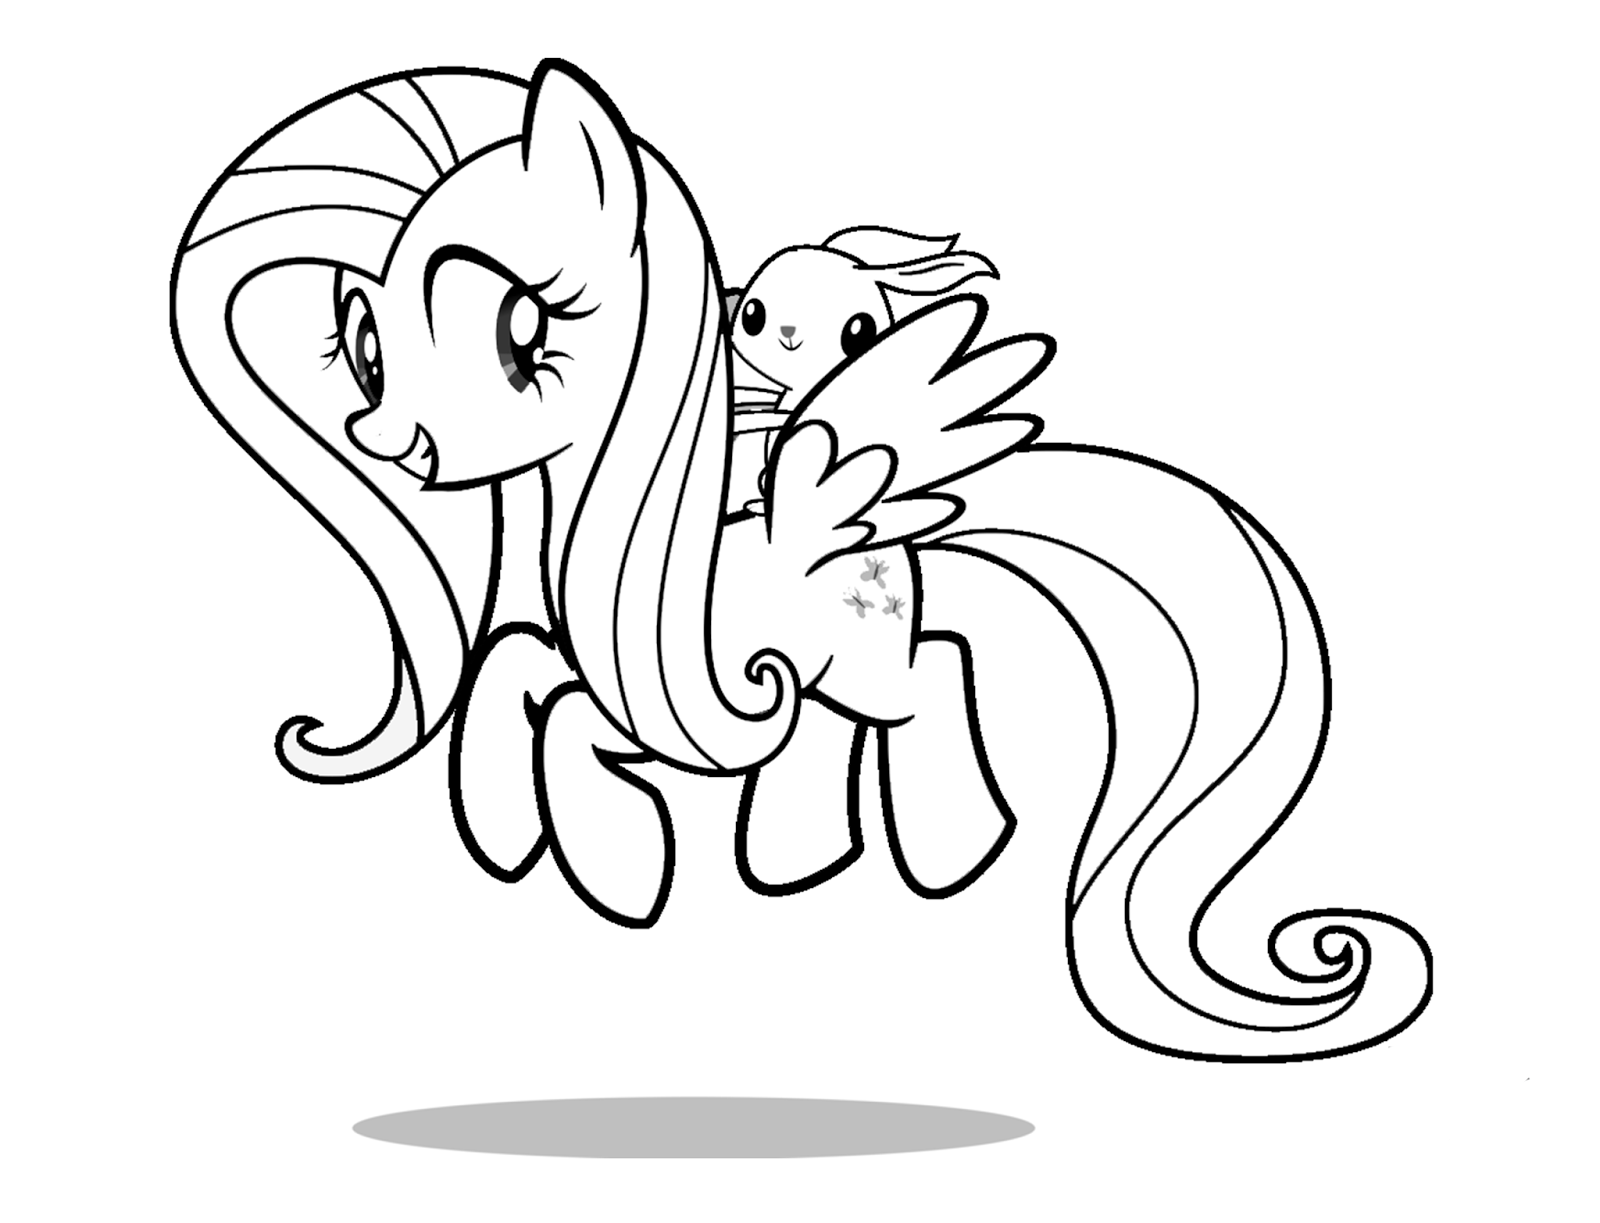 fluttershy coloring page coloring fun young fluttershy coloring fluttershy page